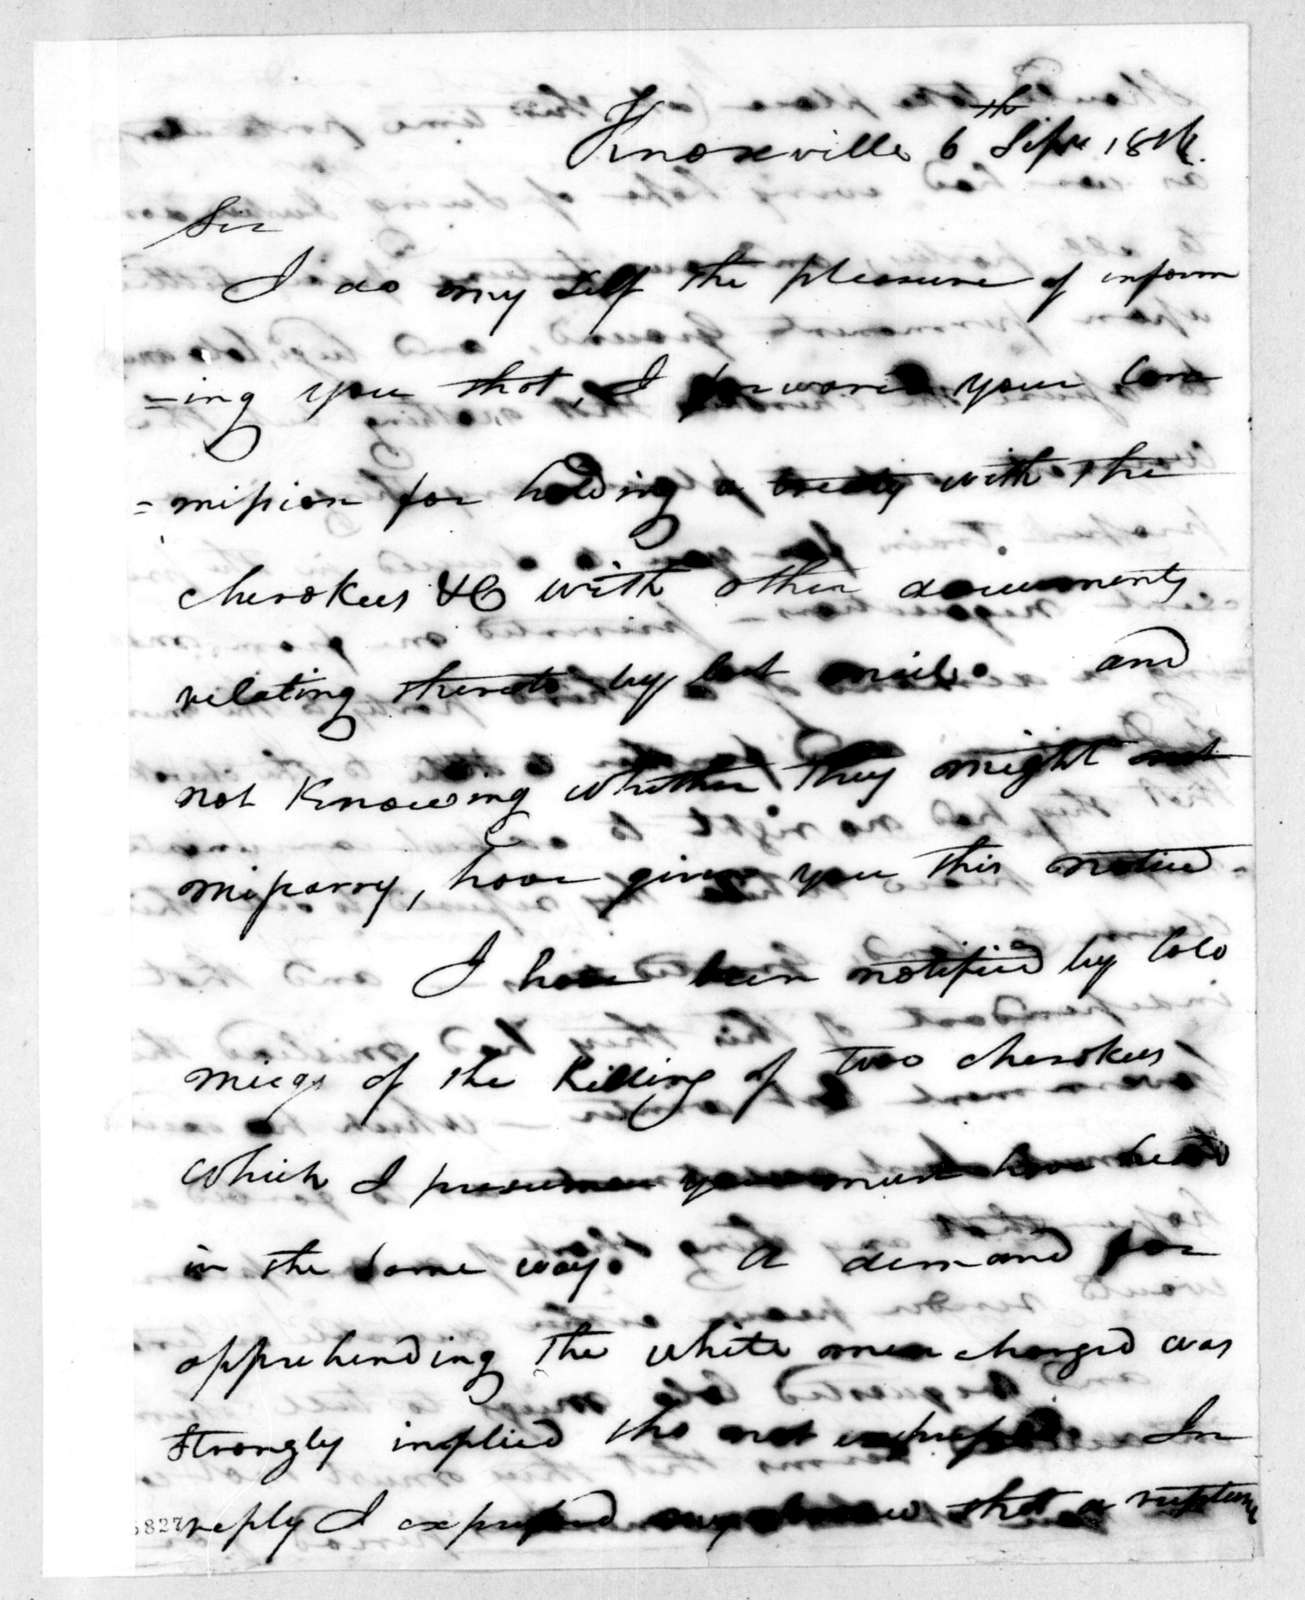 Joseph McMinn to Andrew Jackson, September 6, 1816